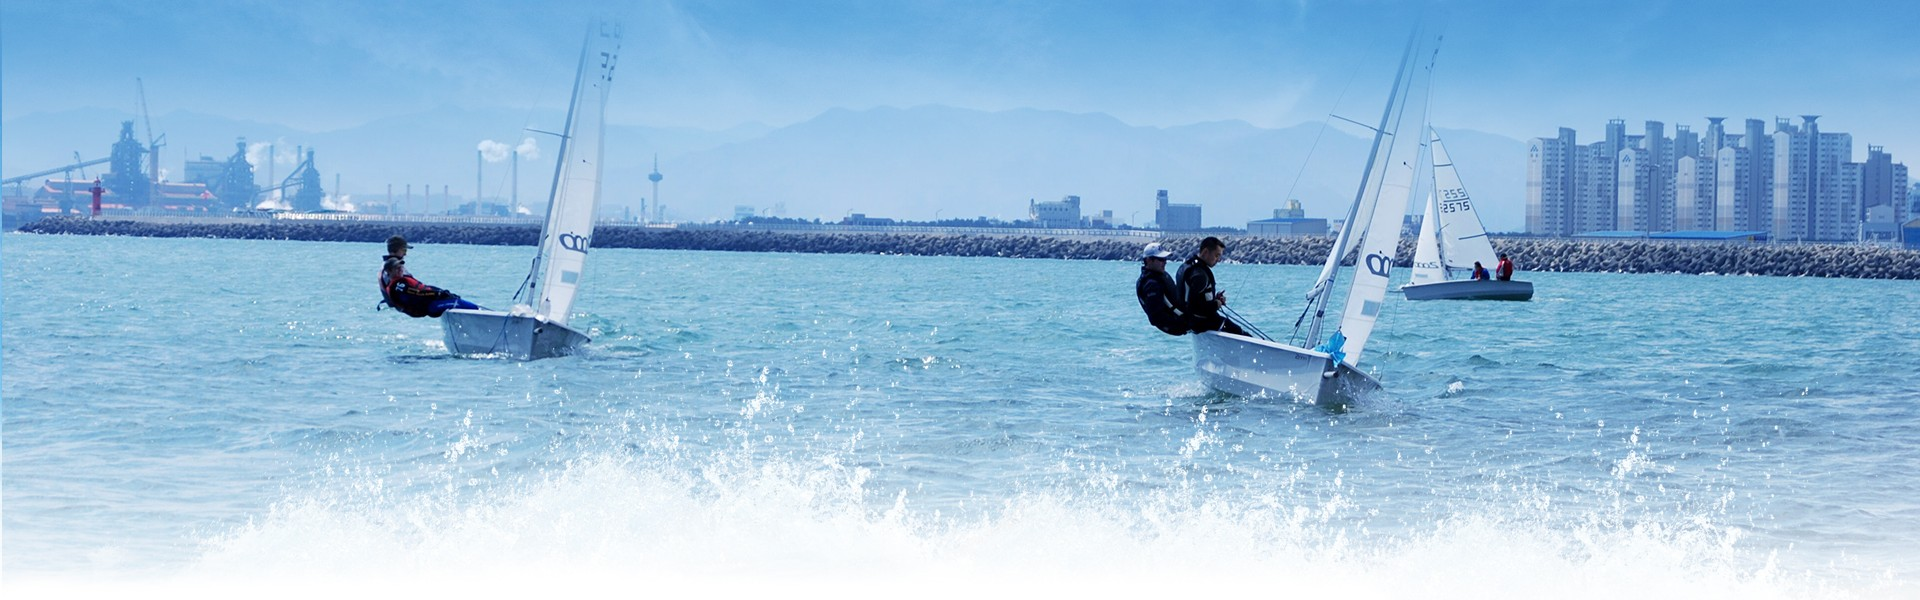 <!-- <div class='sy-caption-txt'><a href='http://watersport.pohangsports.or.kr/bbs/board.php?bo_table=1_main_img&amp;wr_id=3'>첫번째 메인이미지 내용입니다.&#038;nbsp;</a> 